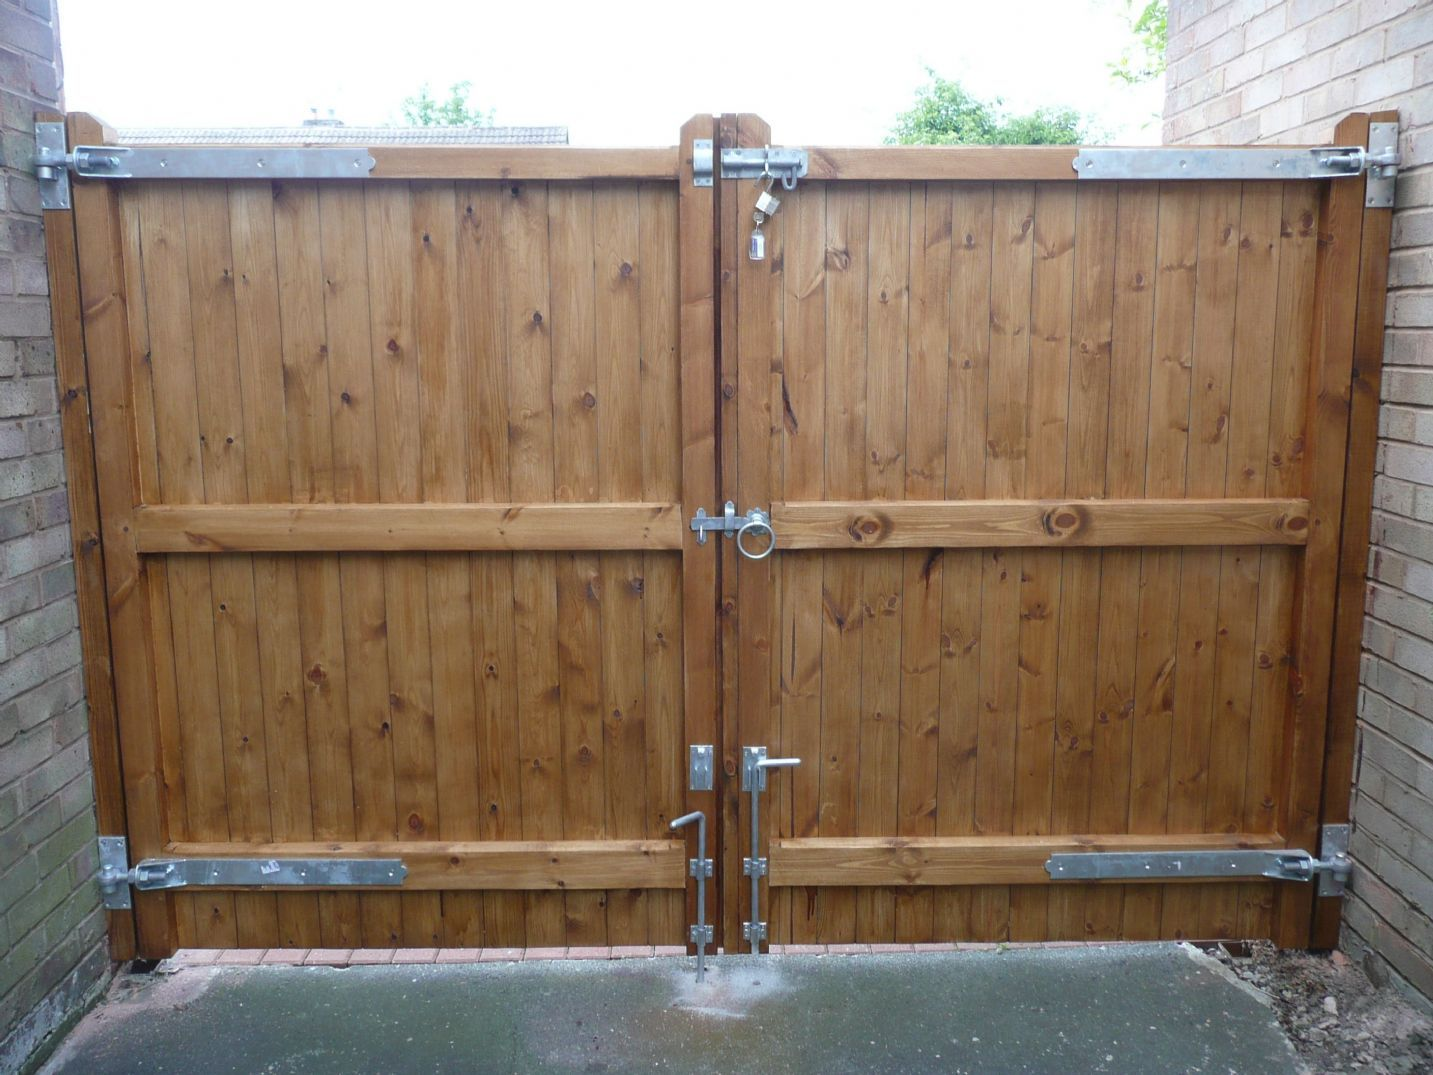 Excellent how to make wooden driveway gates 12 driveway for Wooden driveway gates designs